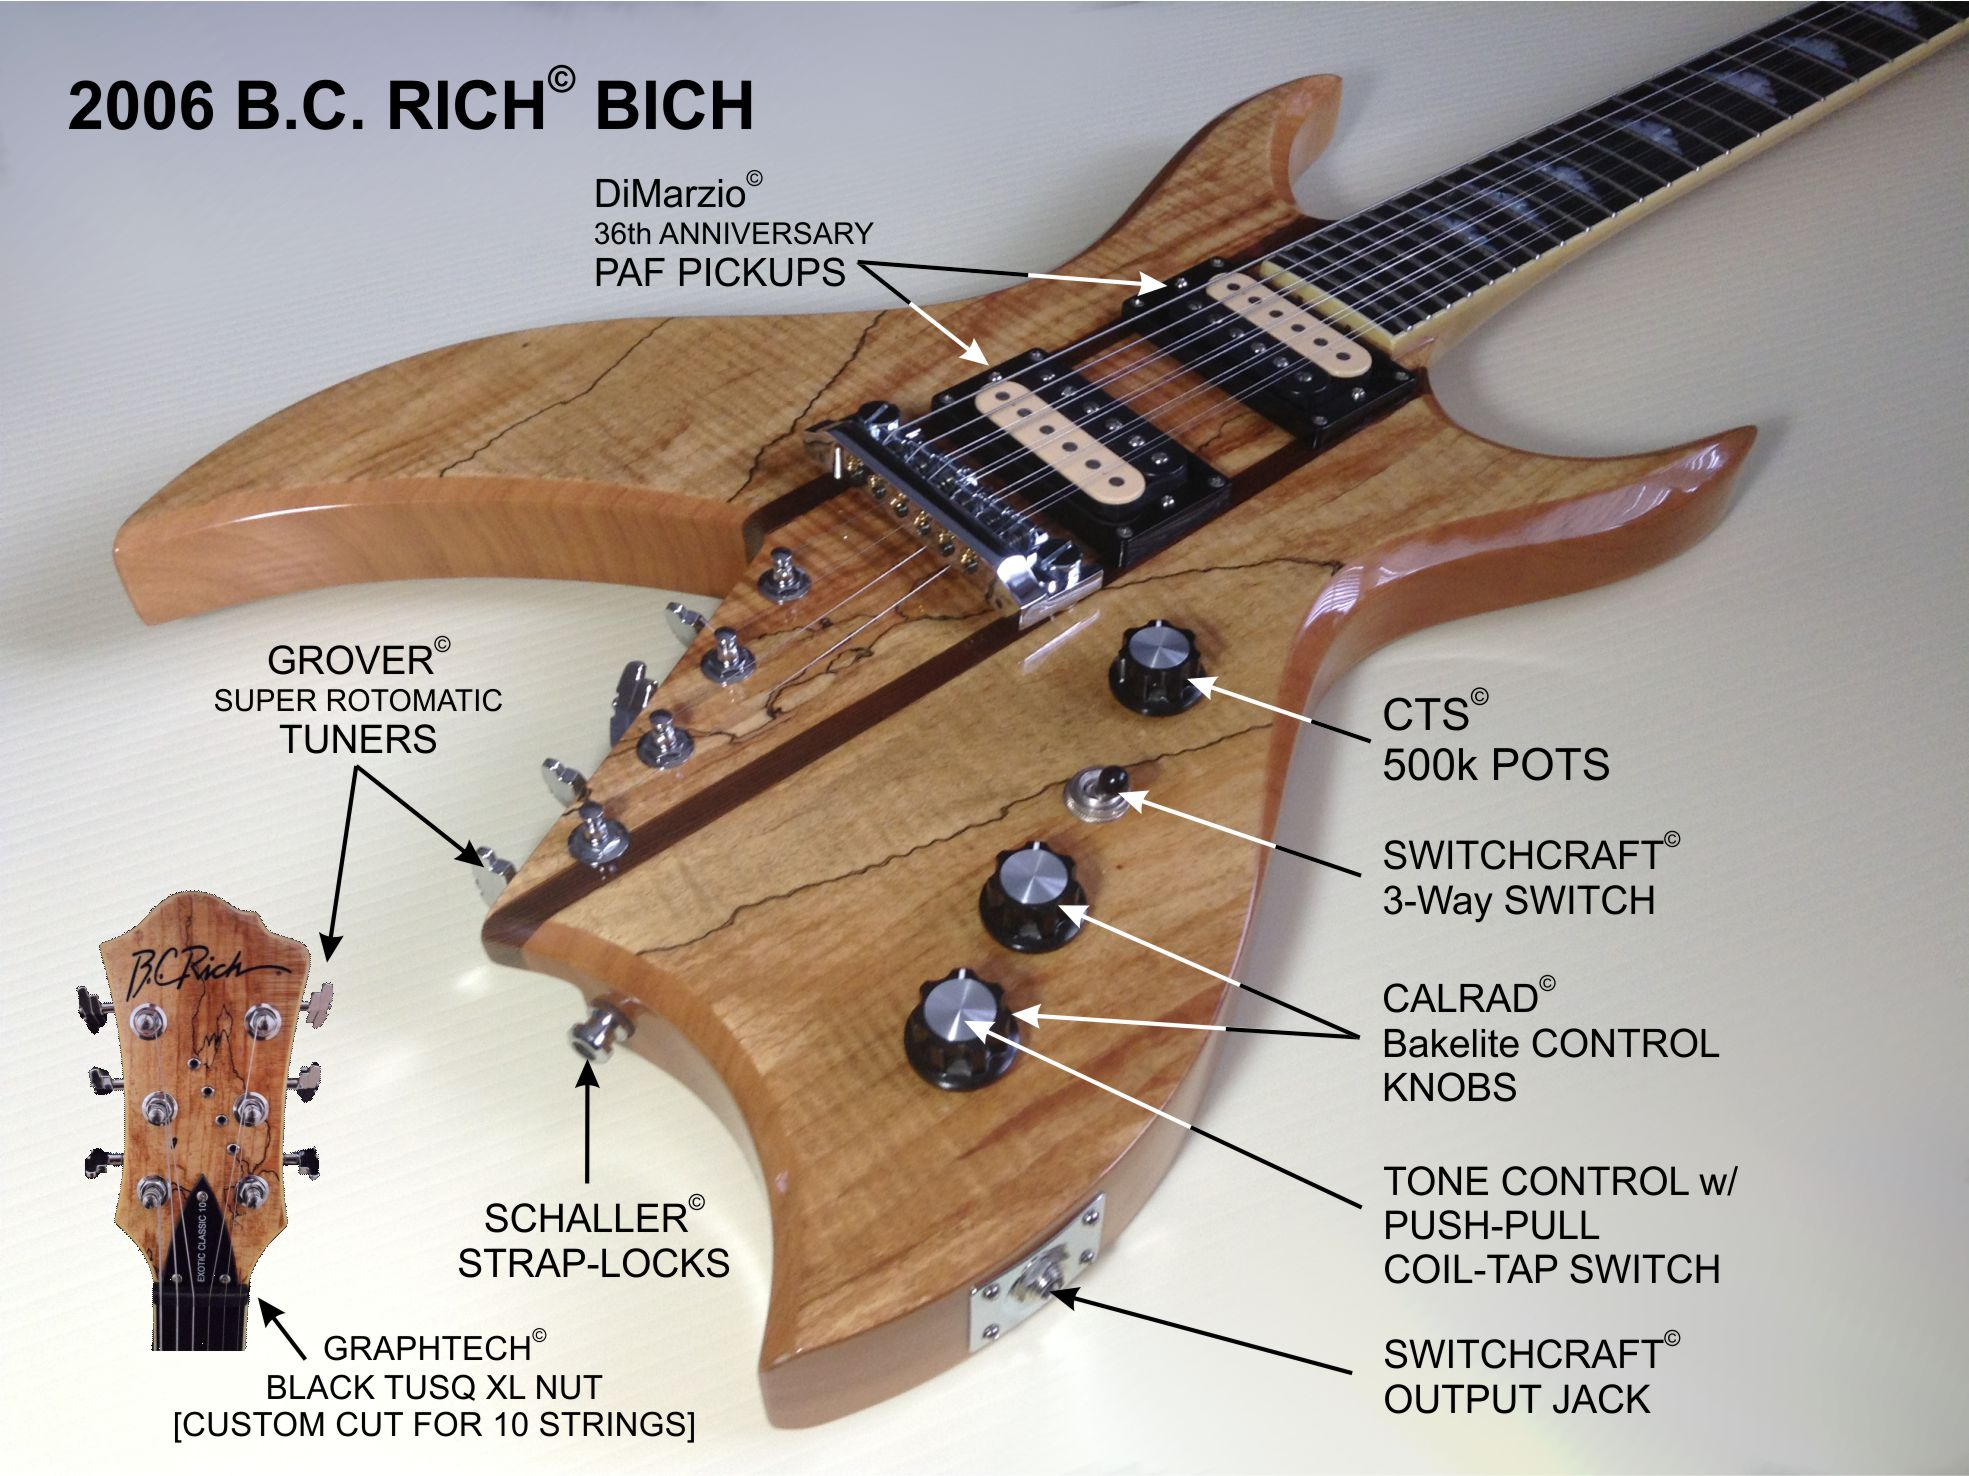 Awesome Stratocaster Wiring Mods Thin Tsb Lookup Square Viper Remote Start Wiring Hot Rod Wiring Diagram Download Old Les Paul 3 Pickup Wiring Fresh4pdt Switch Wiring GUITARS